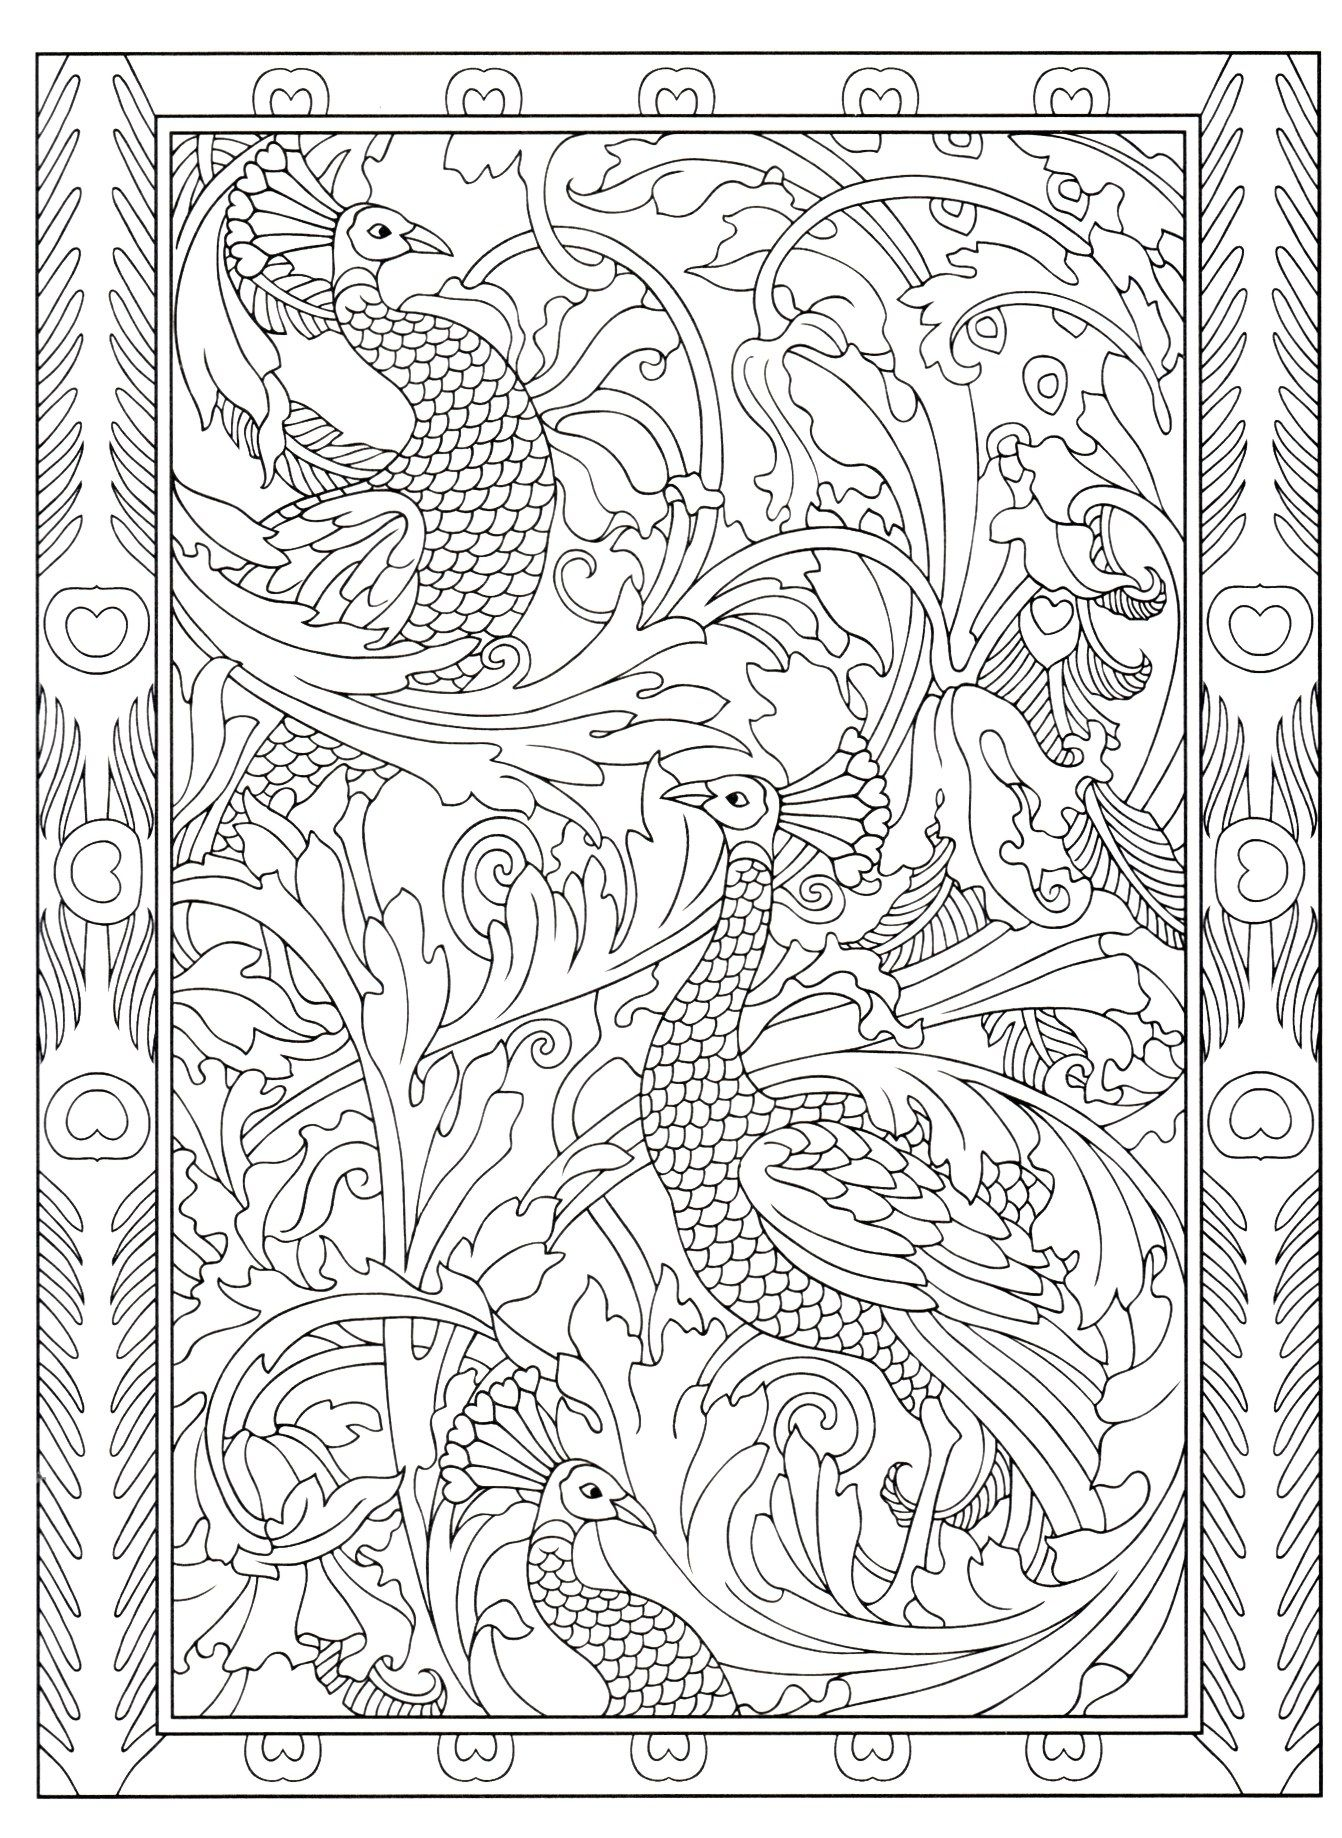 Coloring Inspiration Coloring Book Artist Patrik Giacomelli Enchanted Forest Coloring Book Enchanted Forest Coloring Forest Coloring Book